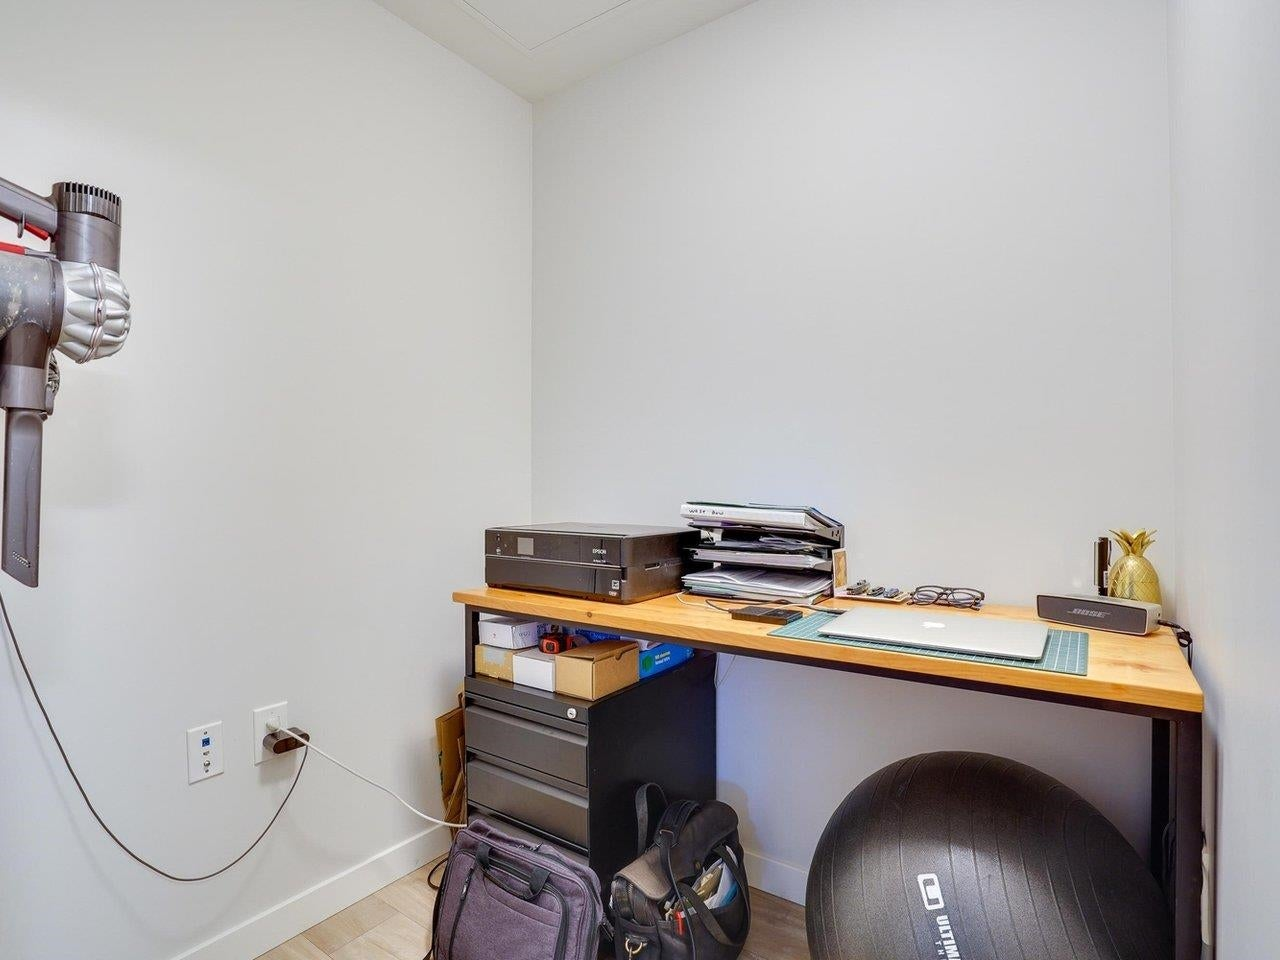 409 615 E 3RD STREET - Lower Lonsdale Apartment/Condo for sale, 2 Bedrooms (R2621616) - #19